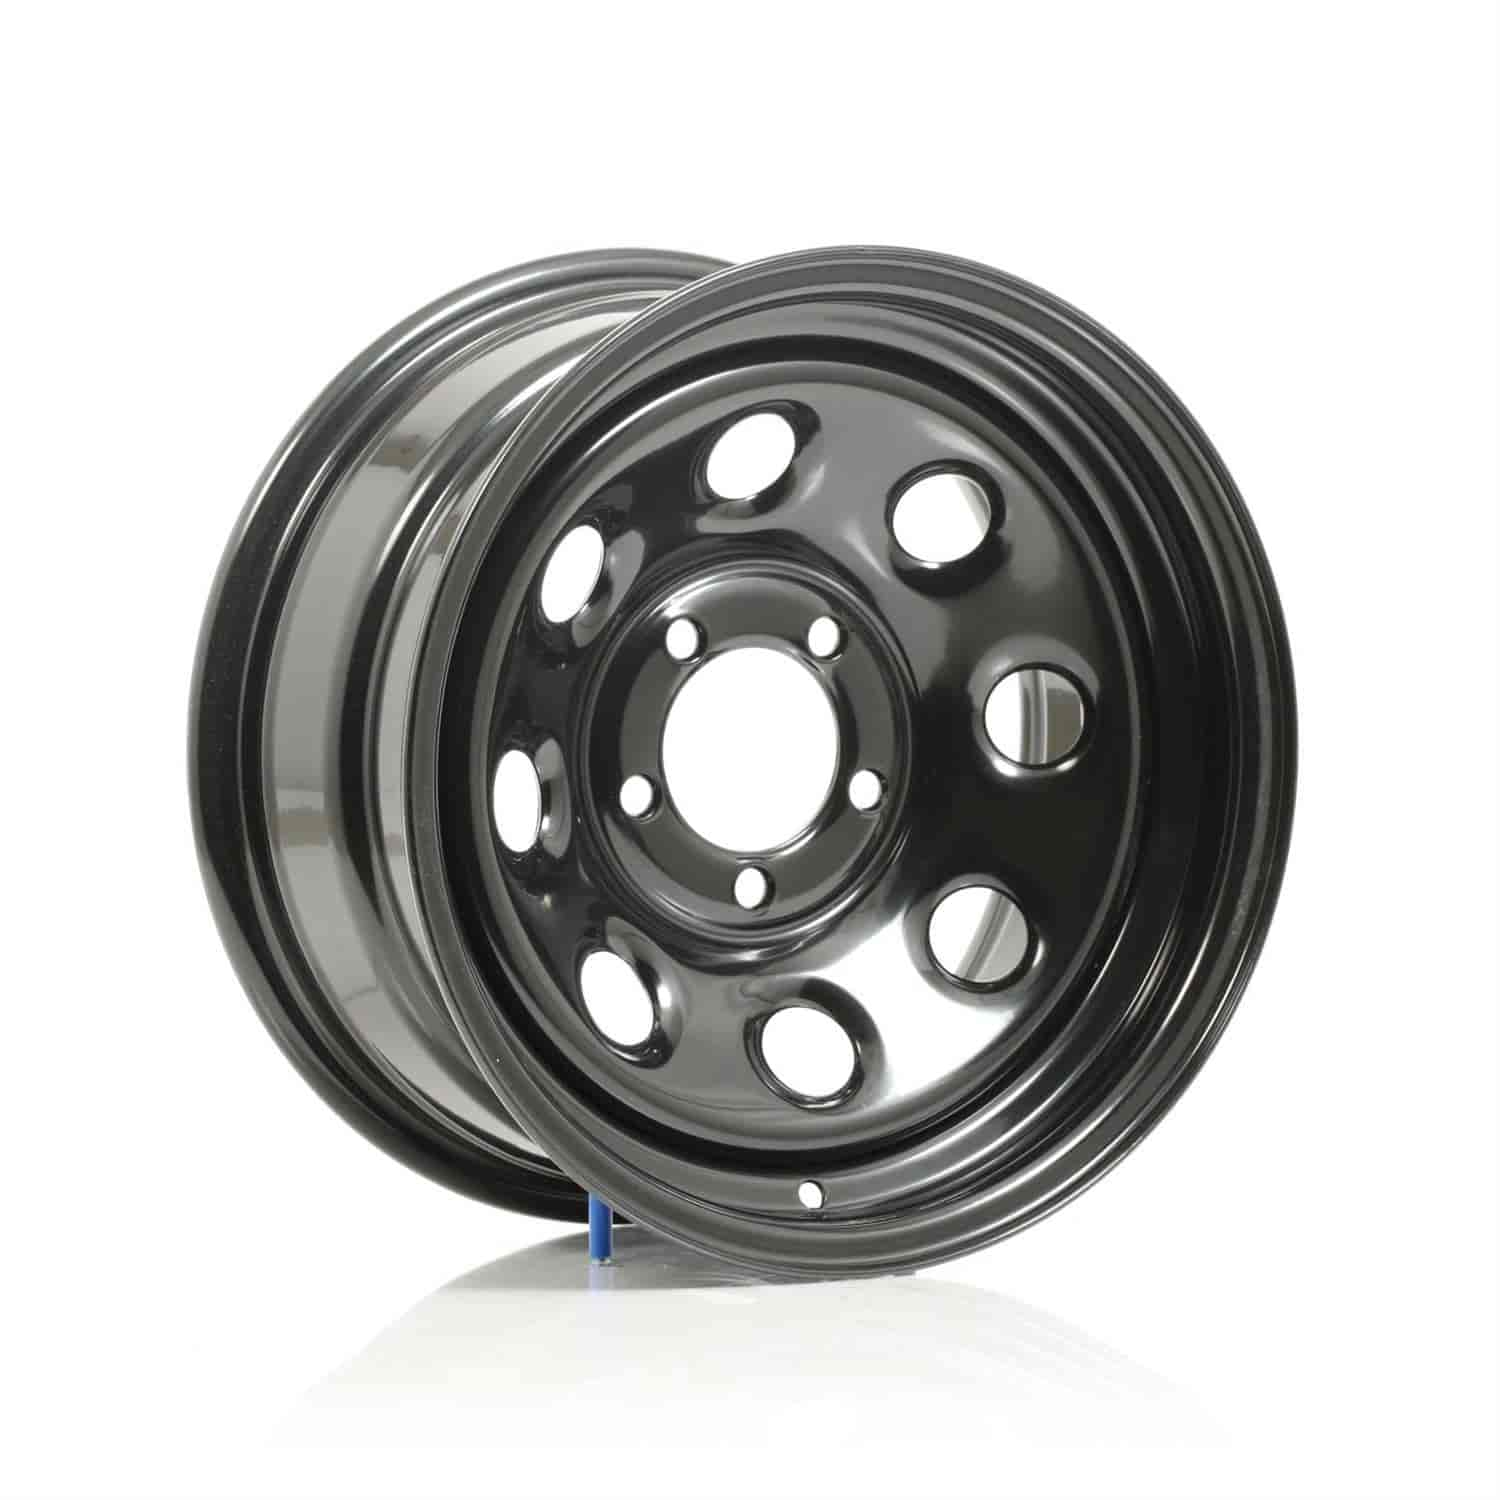 Cragar 3975850 - Cragar Black Soft 8 Wheels